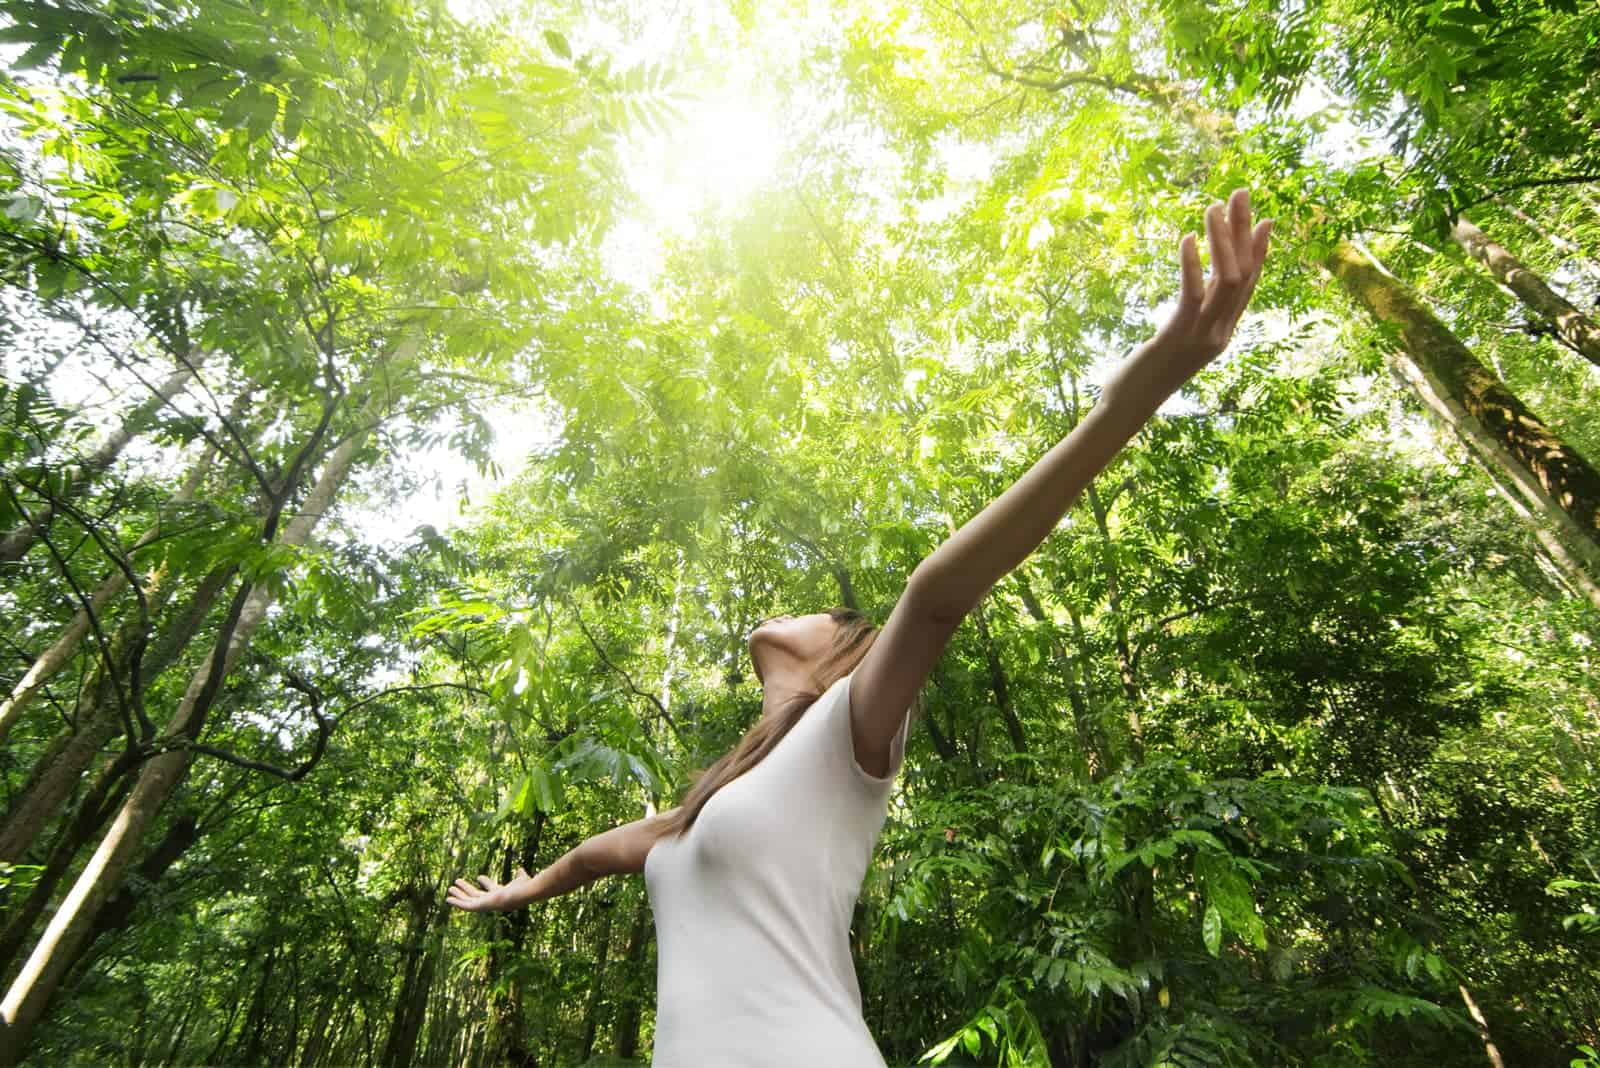 the woman stands in the woods with her arms outstretched